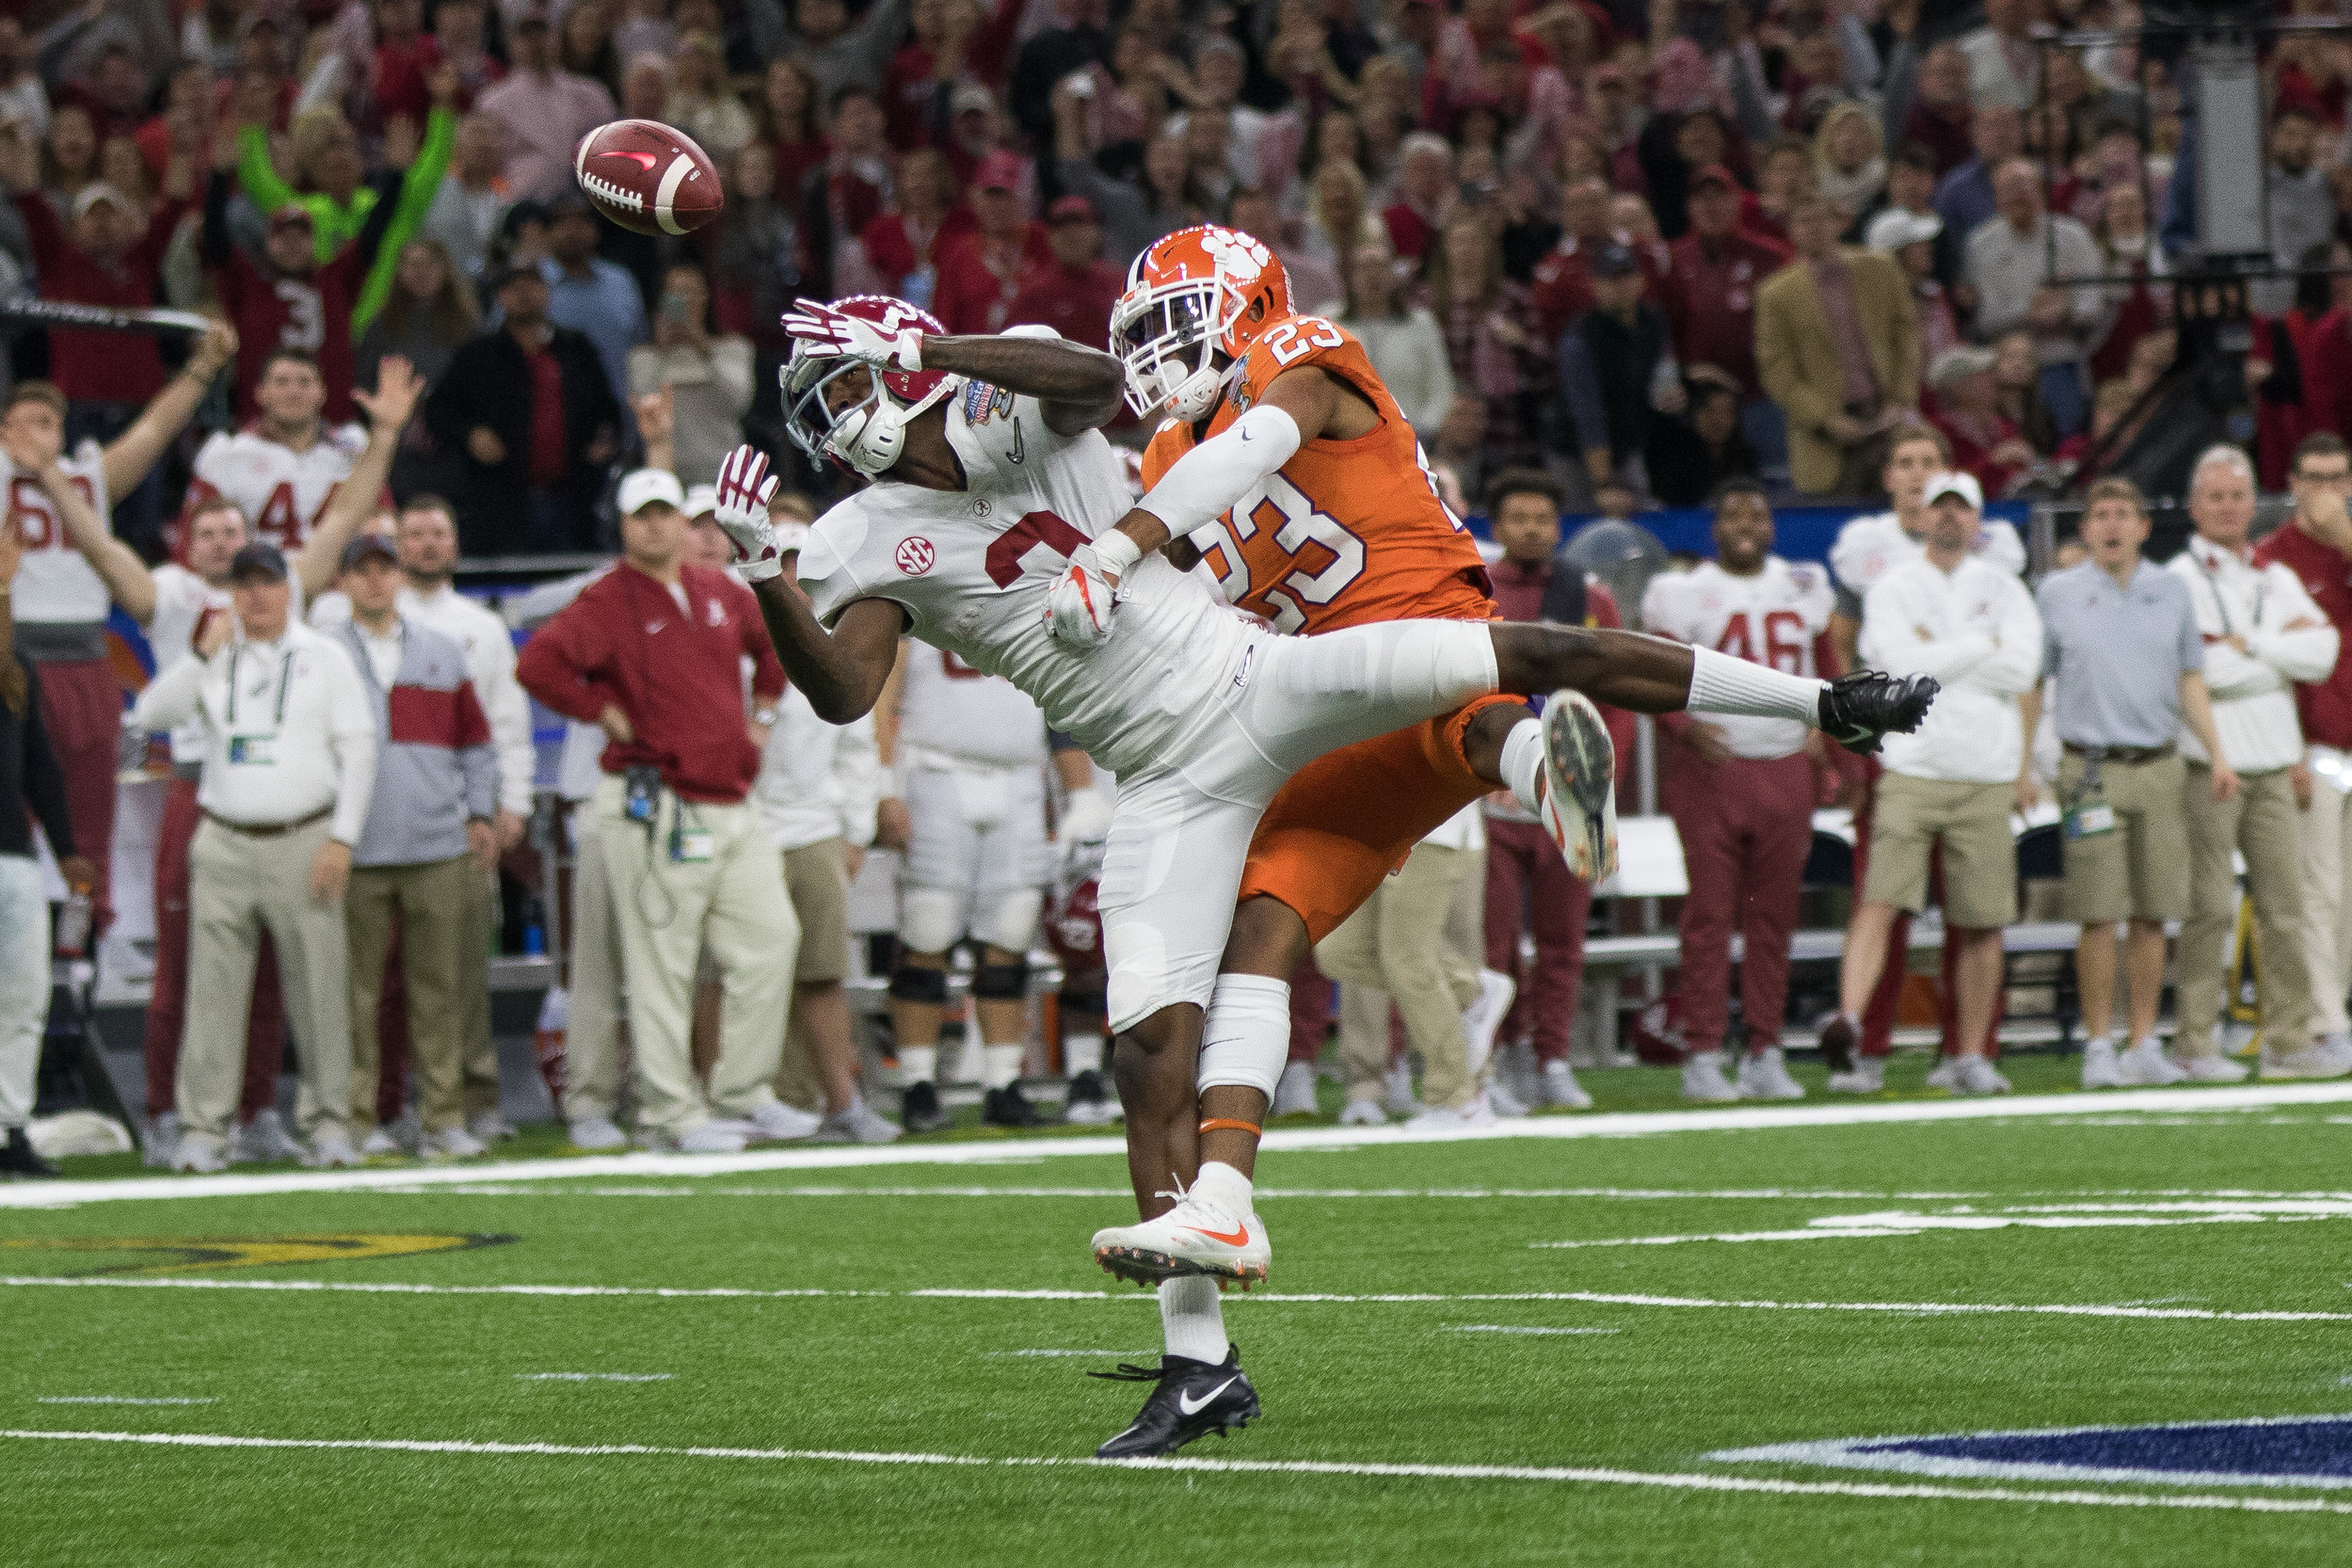 Clemson safety Van Smith tries to break up the ball during the first half of the Allstate Sugar Bowl.